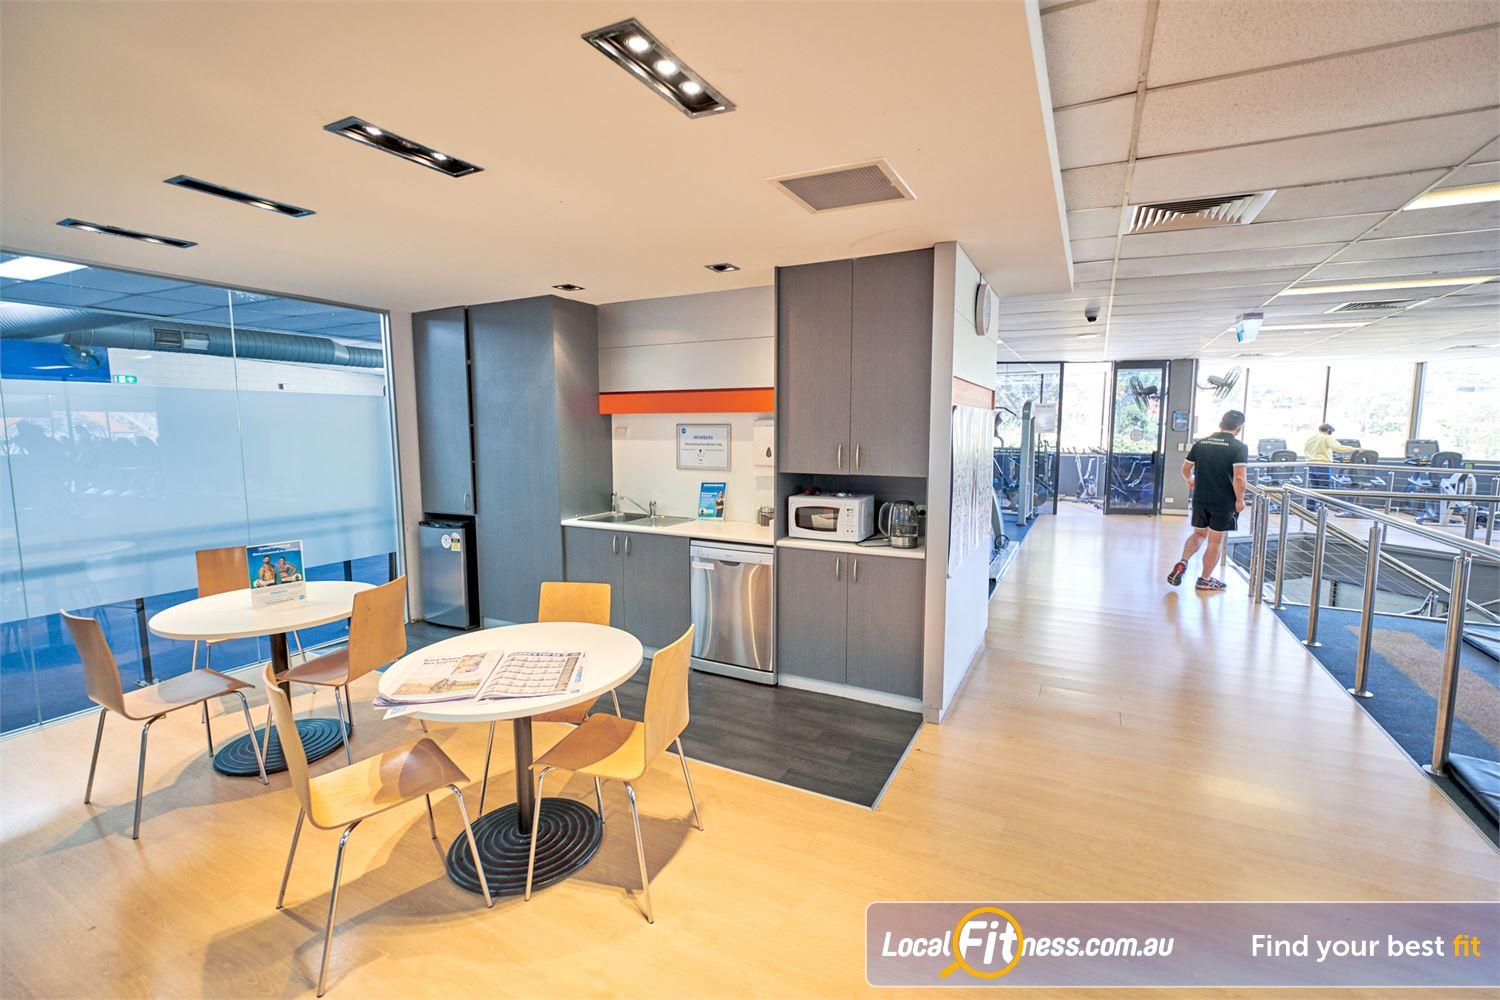 Goodlife Health Clubs Near Canterbury Our member's lounge includes kitchen facilities.